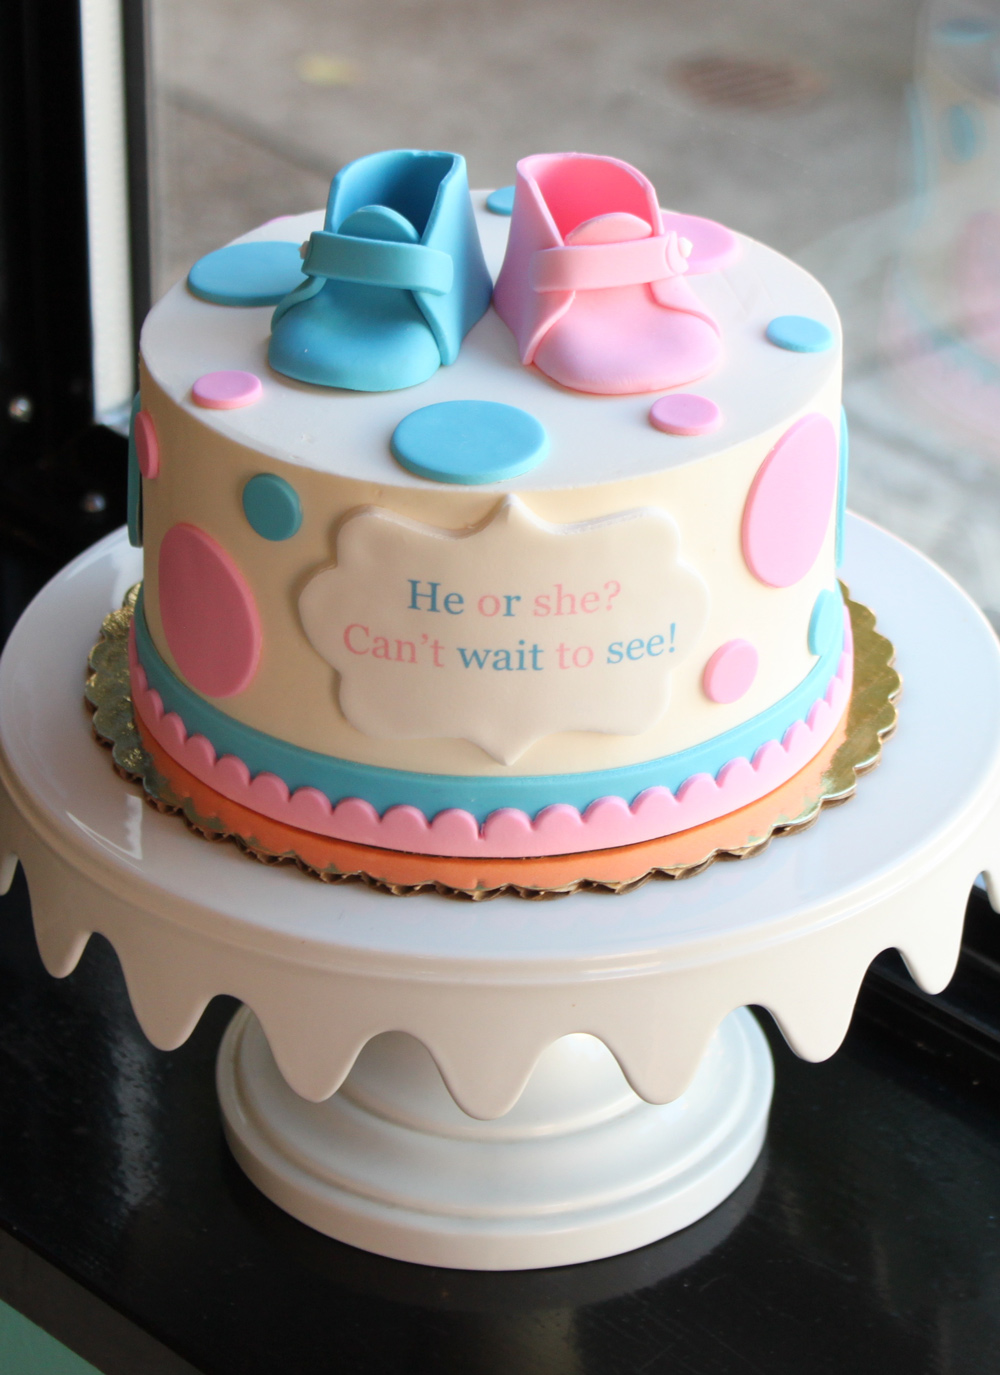 Pictures of babyshower cakes girl, princess peach stripping